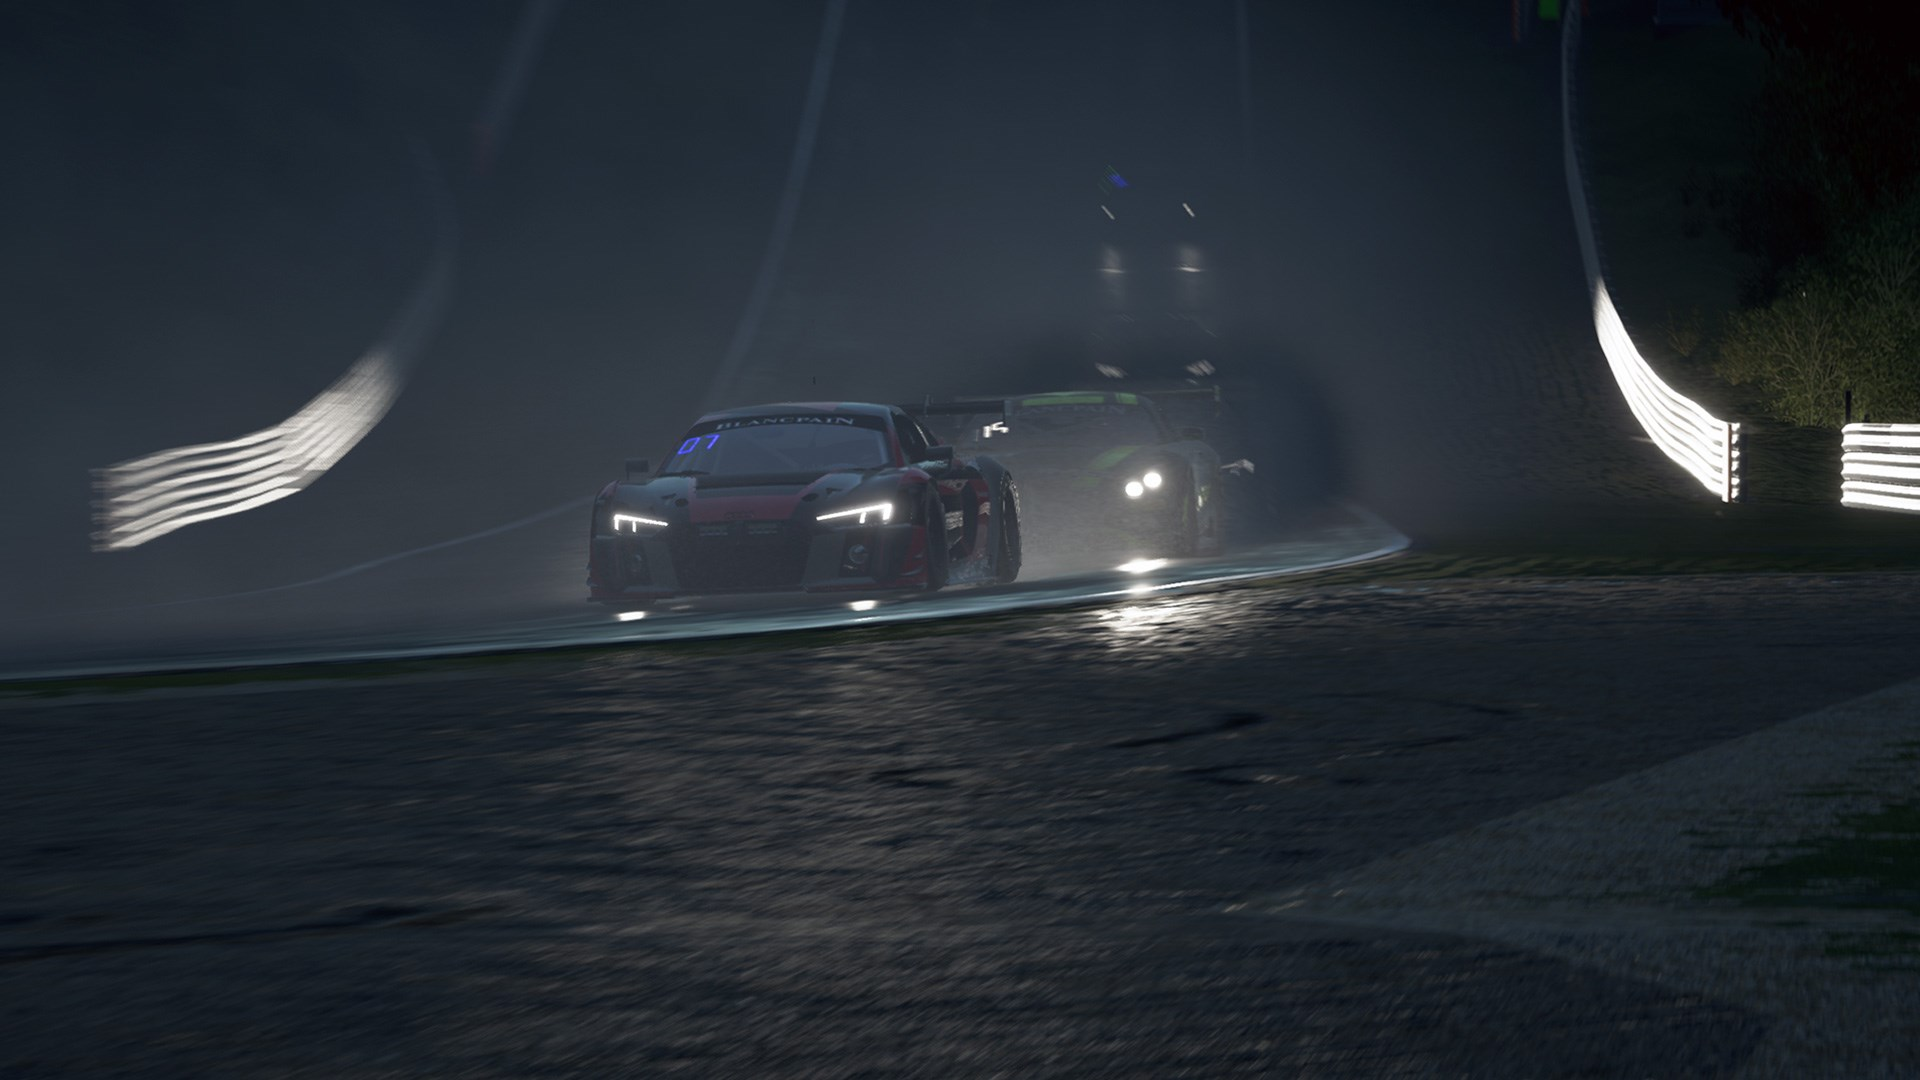 Assetto Corsa Competizione is a sequel with dynamic weather